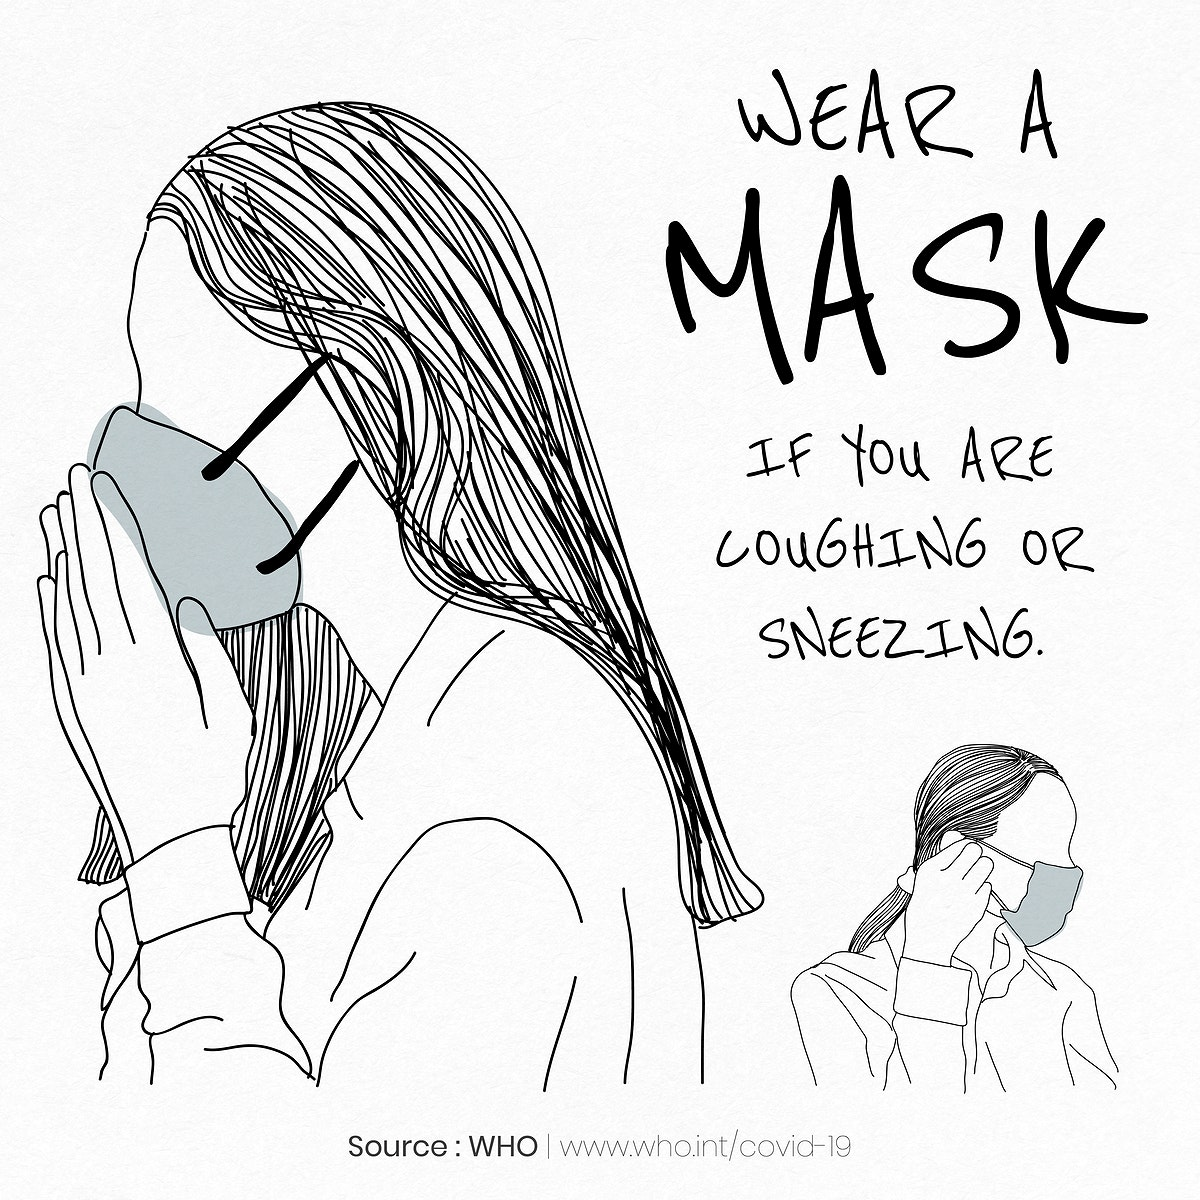 Wear a mask if you're coughing or sneezing to protect yourself from the coronavirus outbreak template source WHO vector